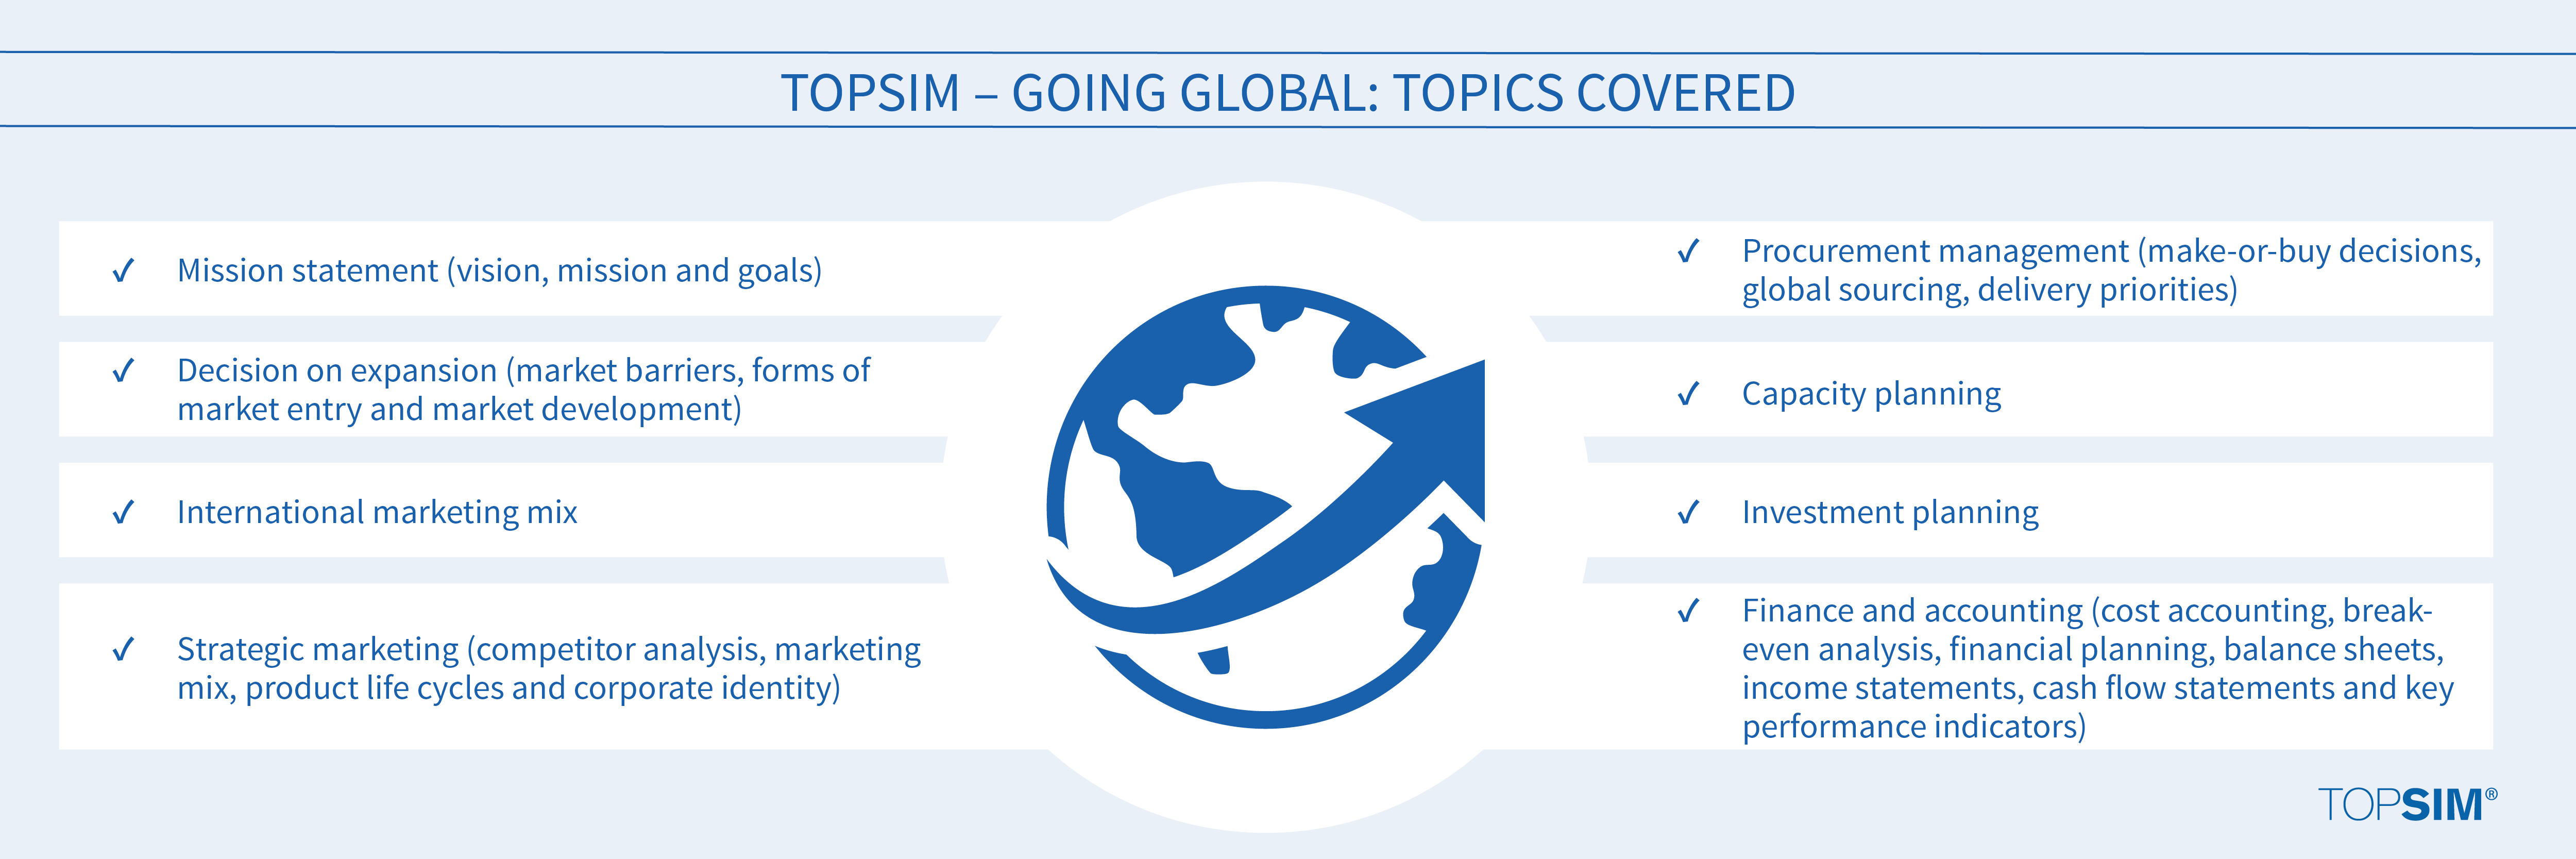 TOPSIM – Going Global Topics Covered